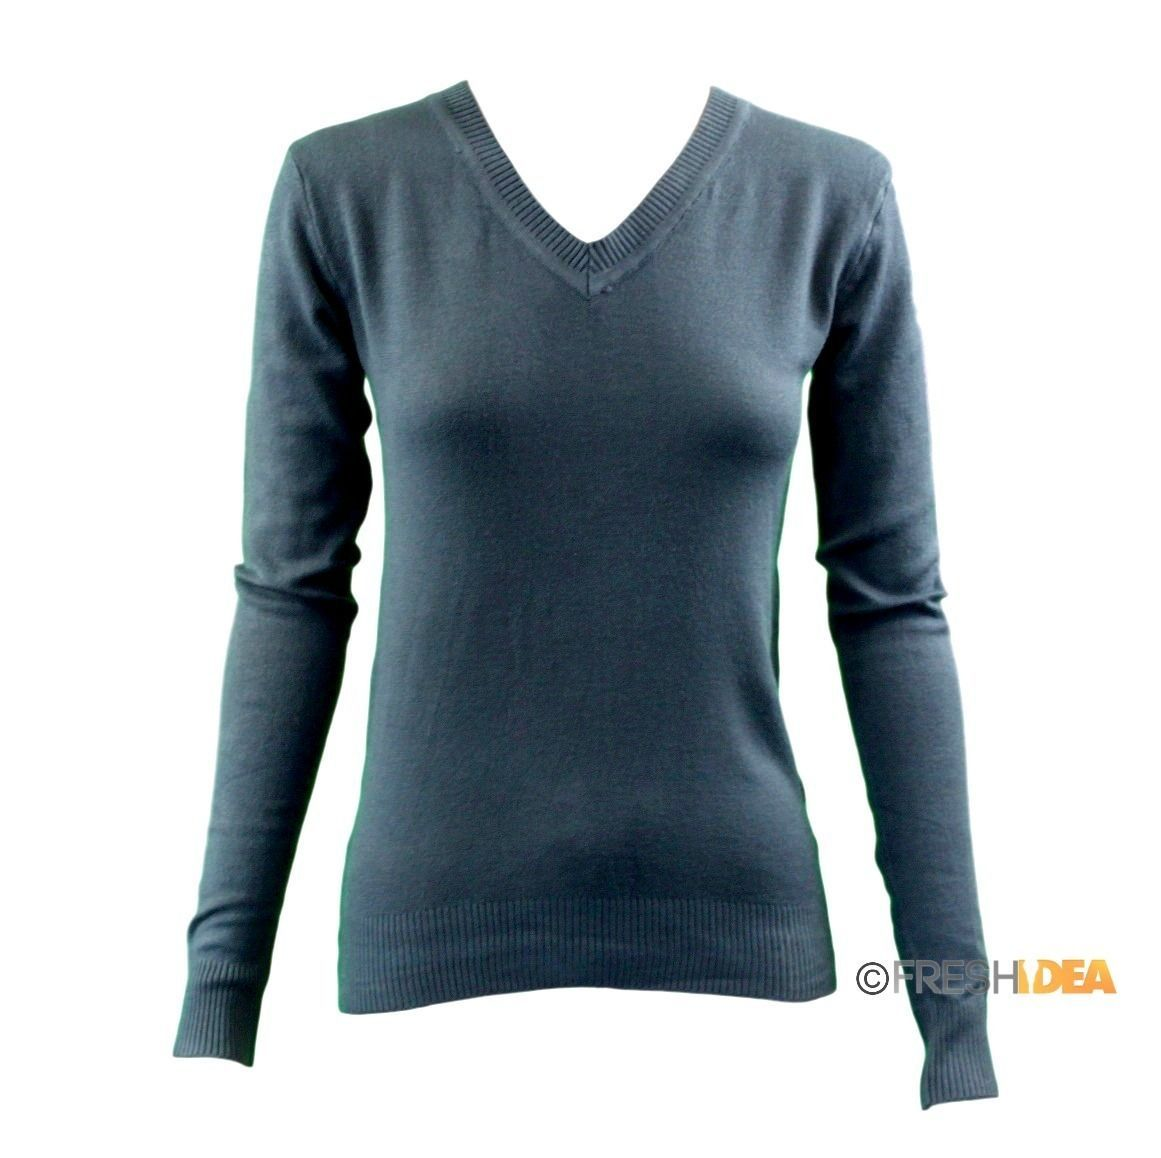 Women-039-s-Ladies-Knitted-V-Neck-Jumper-Sweater-Knitwear-Pullover-Fine-Cotton-Blend thumbnail 8